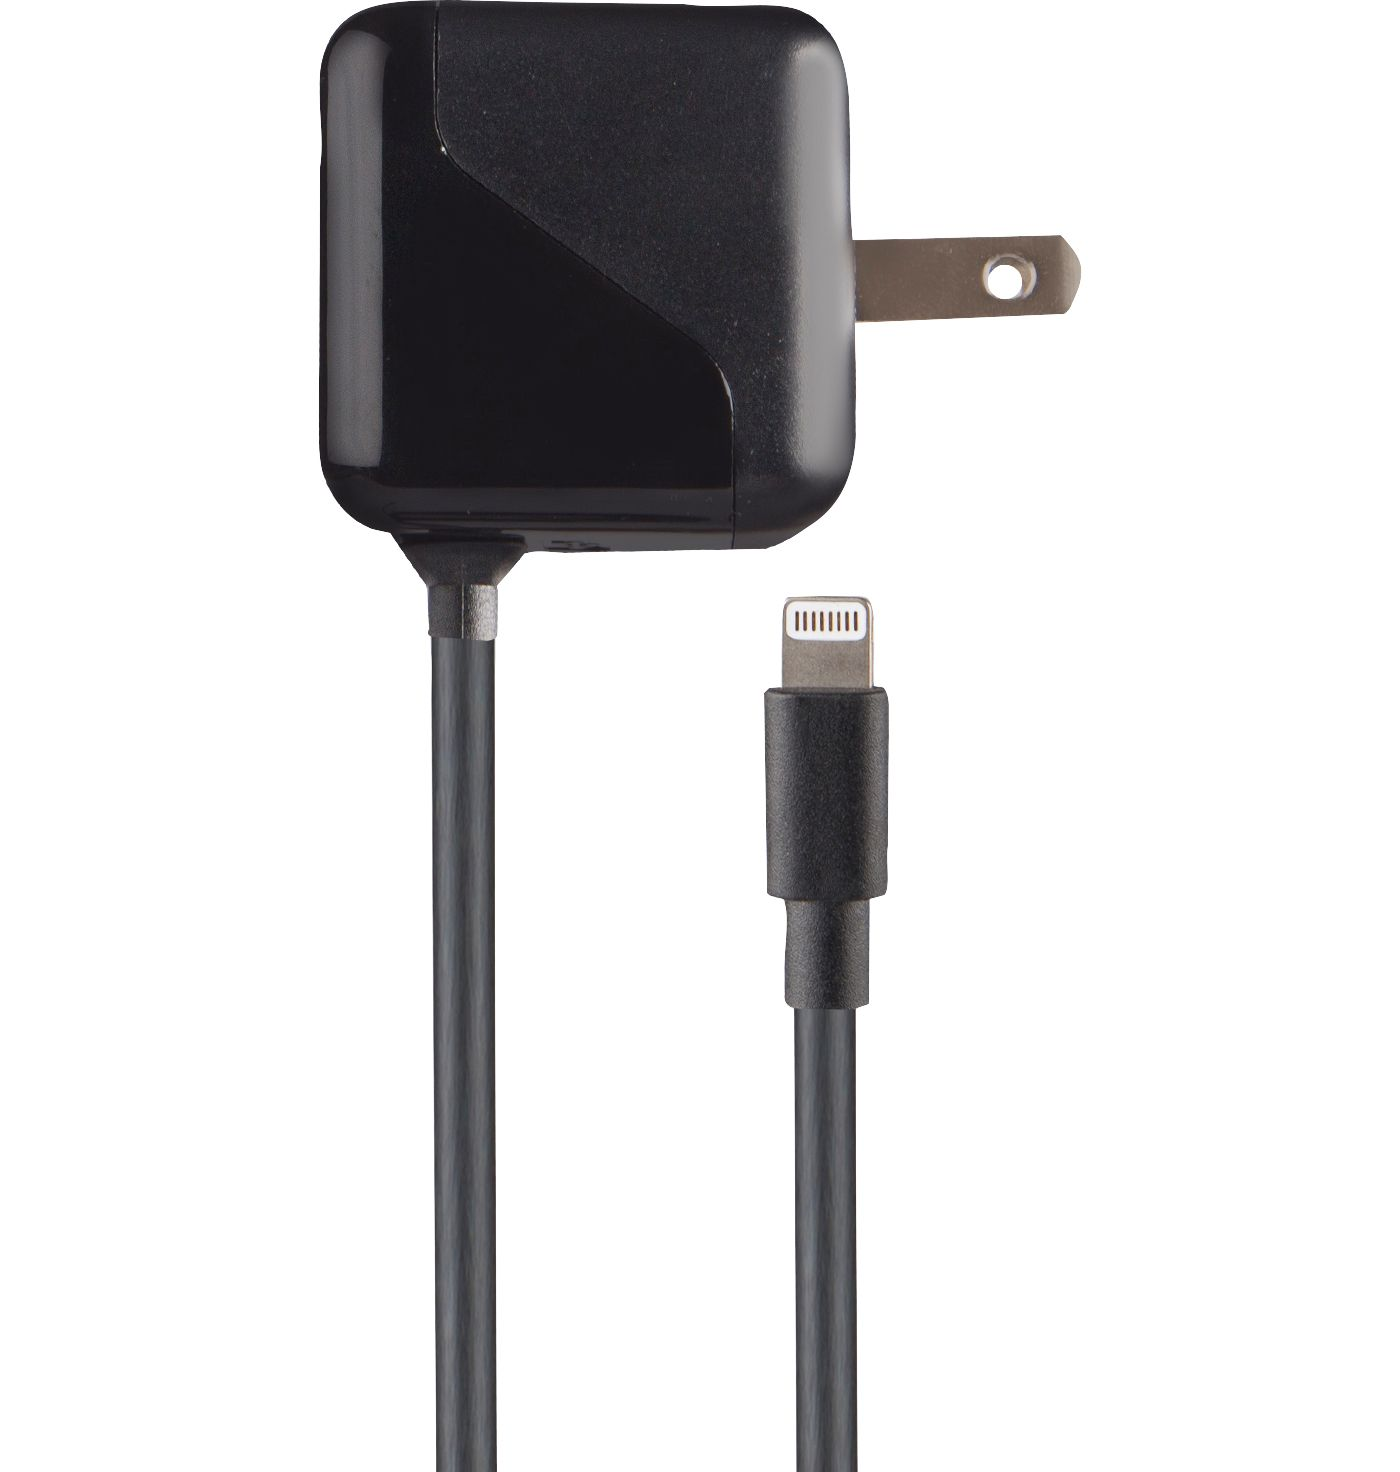 Vivitar 2-in-1 Lightning Wall Charger